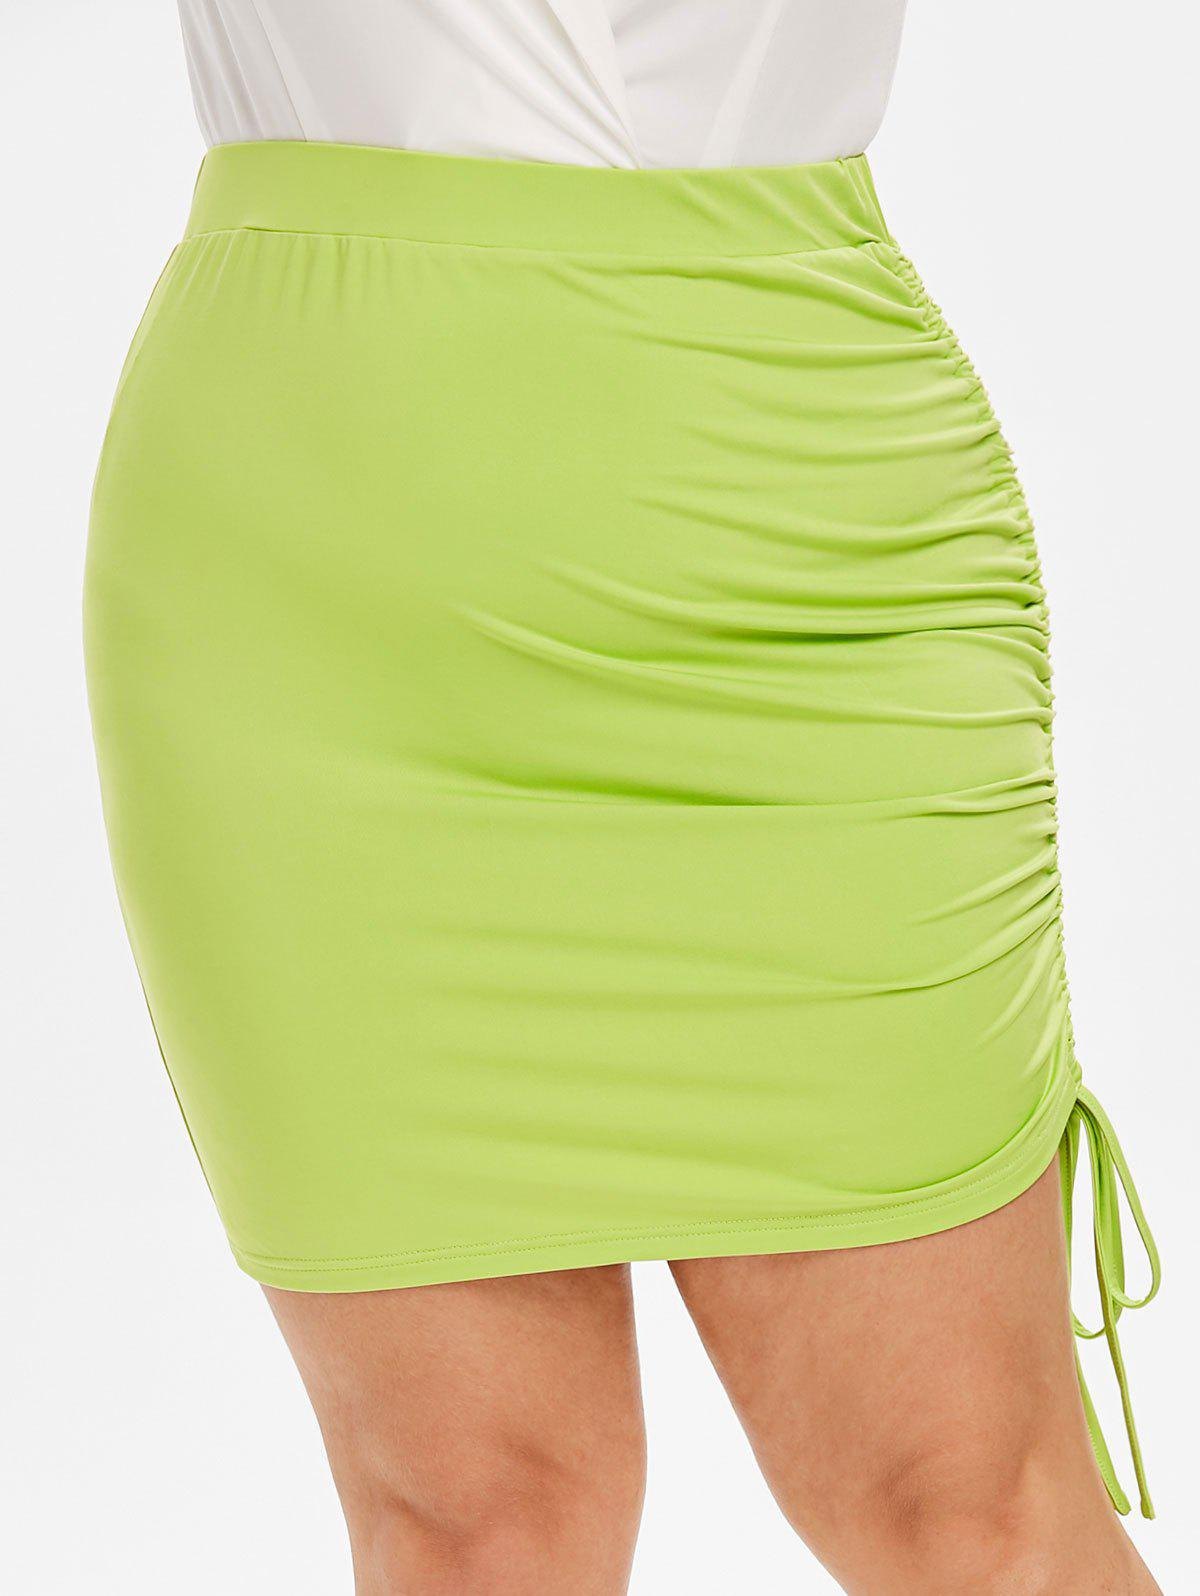 42% OFF] Plus Size High Rise Cinched Neon Skirt | Rosegal